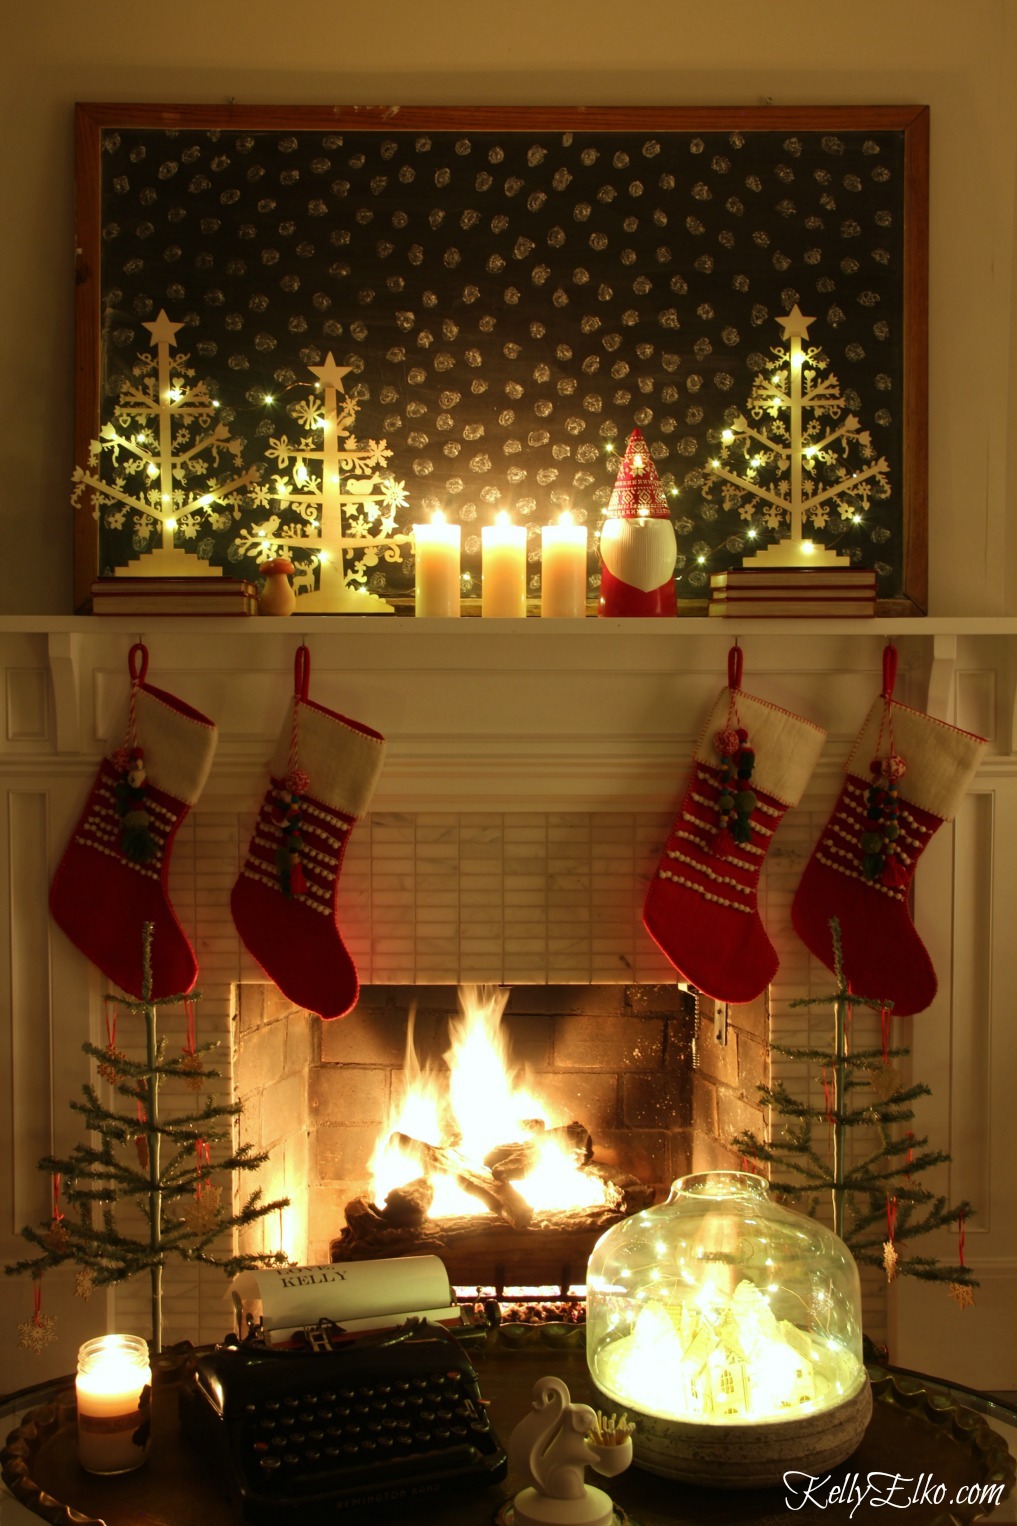 Christmas Nights Tour - see 25 of the best Christmas homes lit up at night! Love this mantel with giant chalkboard of snowflakes kellyelko.com #christmas #christmasdecorating #christmasdecor #christmaslights